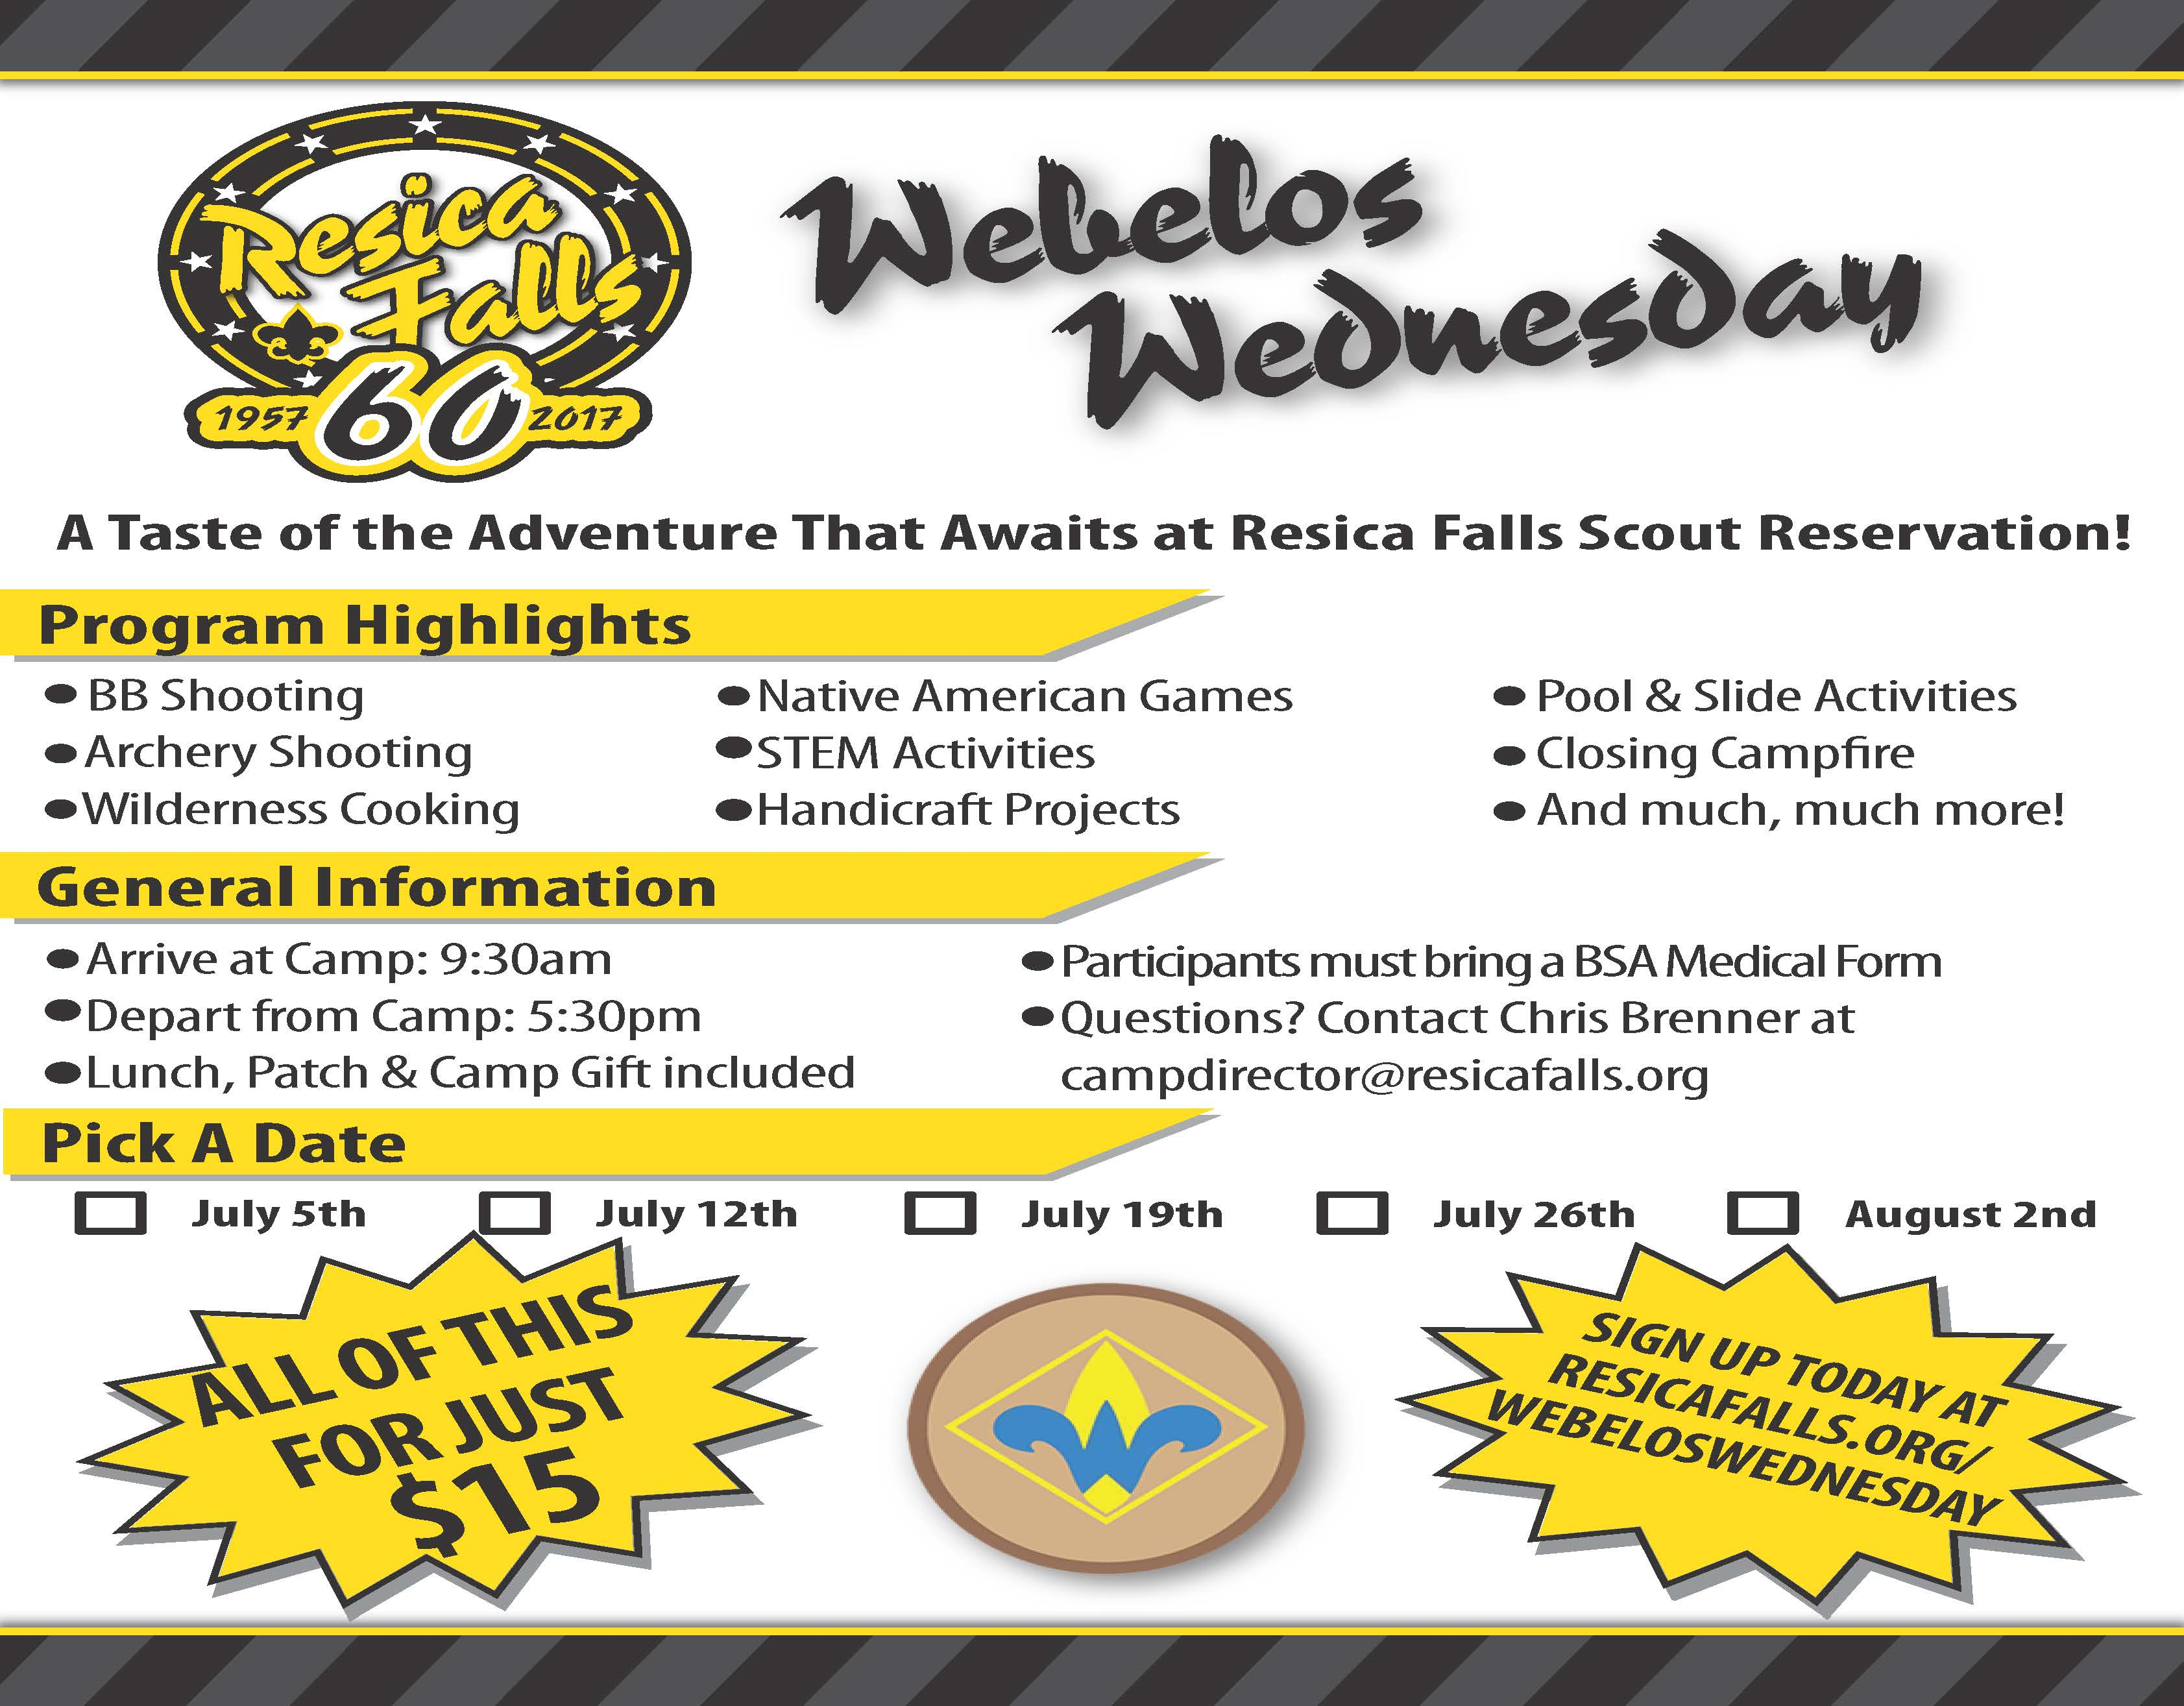 Gallery of Webelos Wednesday At Resica Falls August 2 2017 ~ Bsa ...